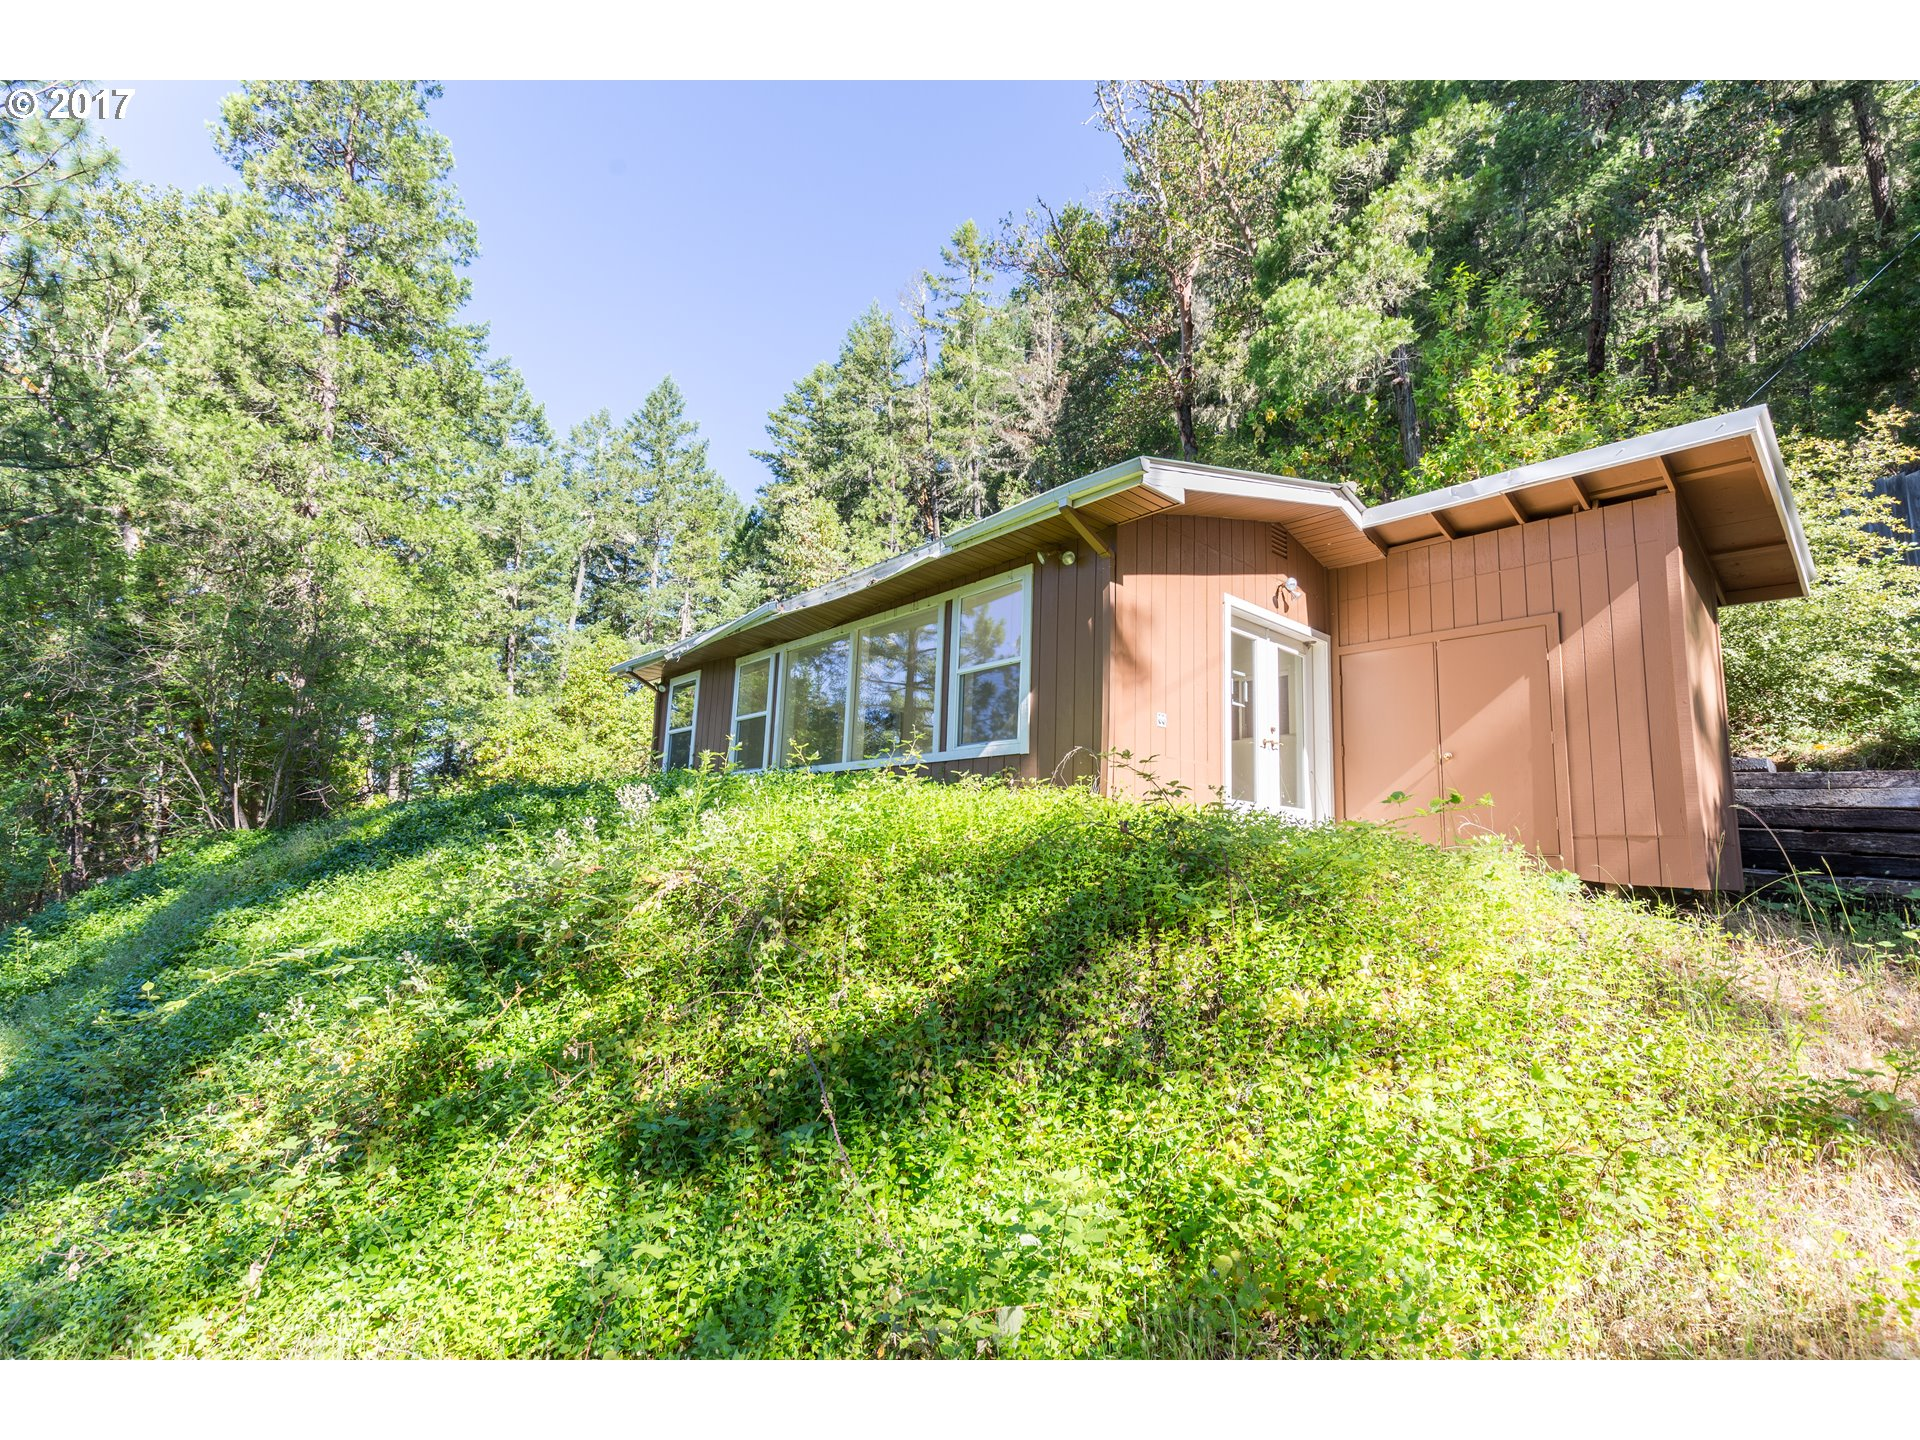 Sunny Valley, OR 1 Bedroom Home For Sale